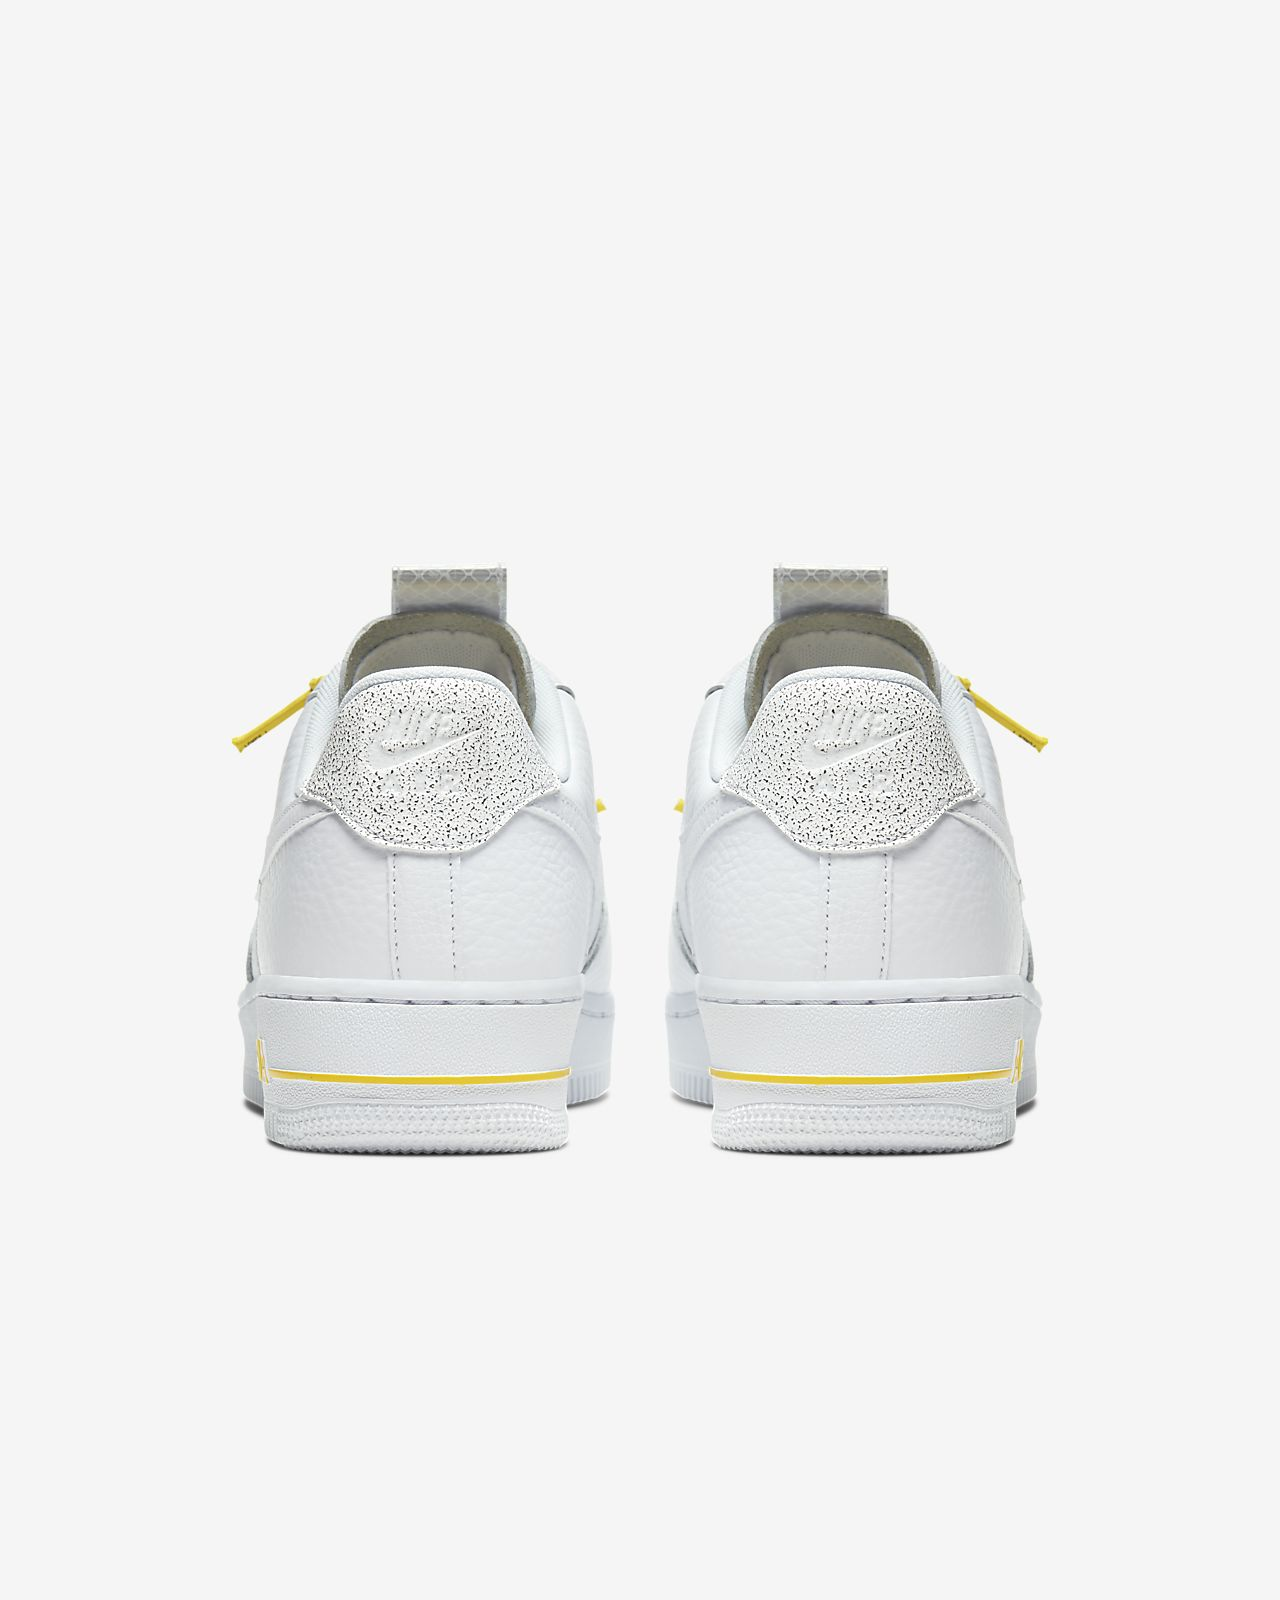 Chaussure Nike Wmns Air Force 1 07 Lux Blanc